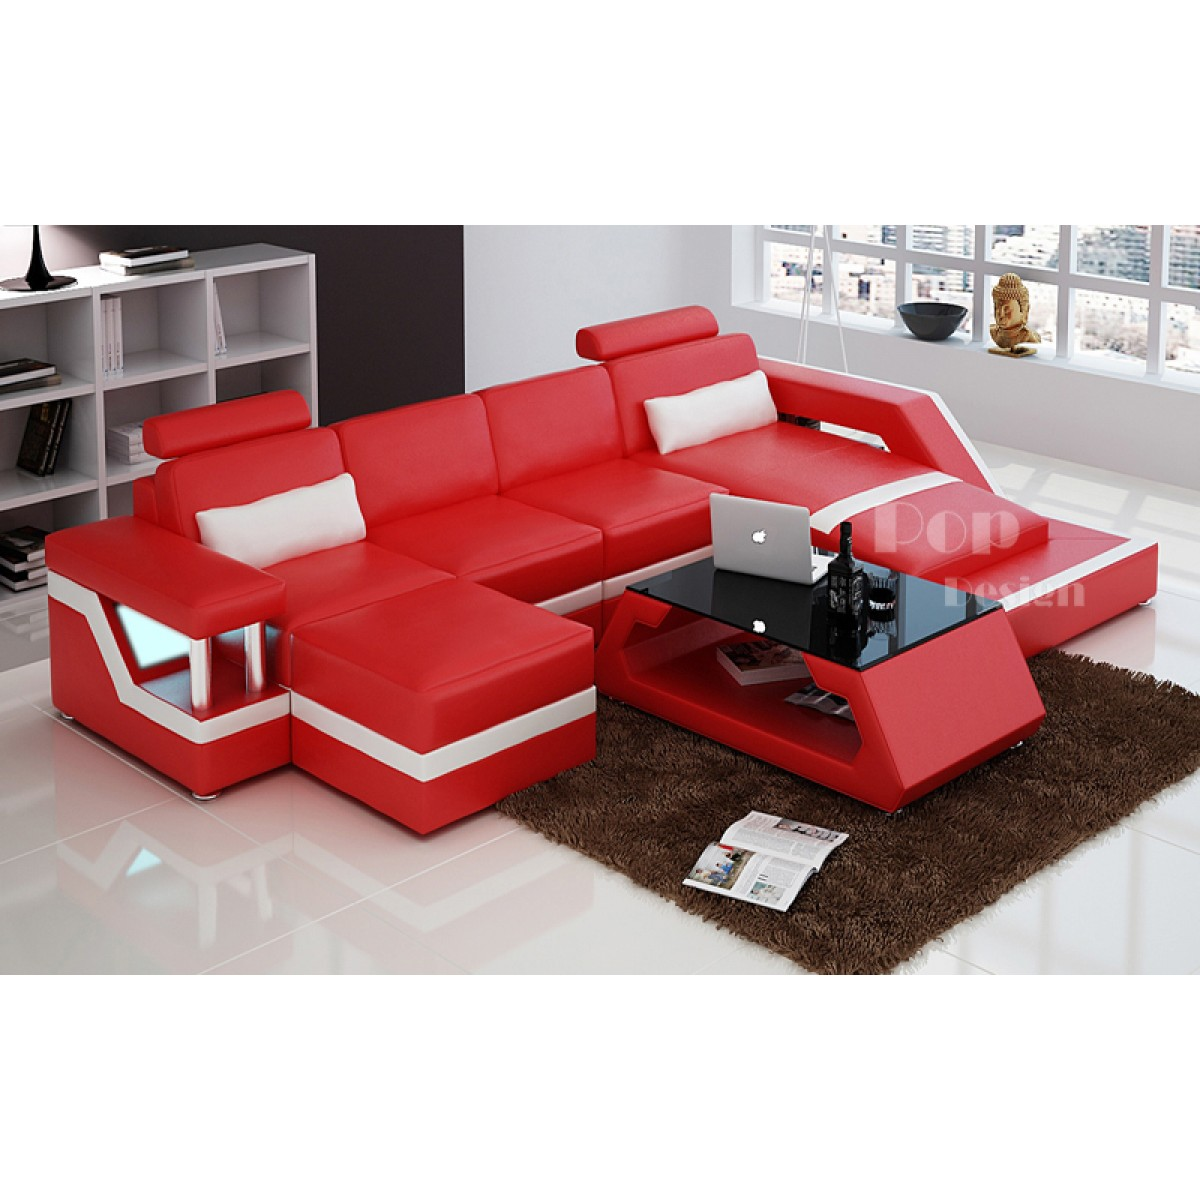 Convertible Sofa Ikea